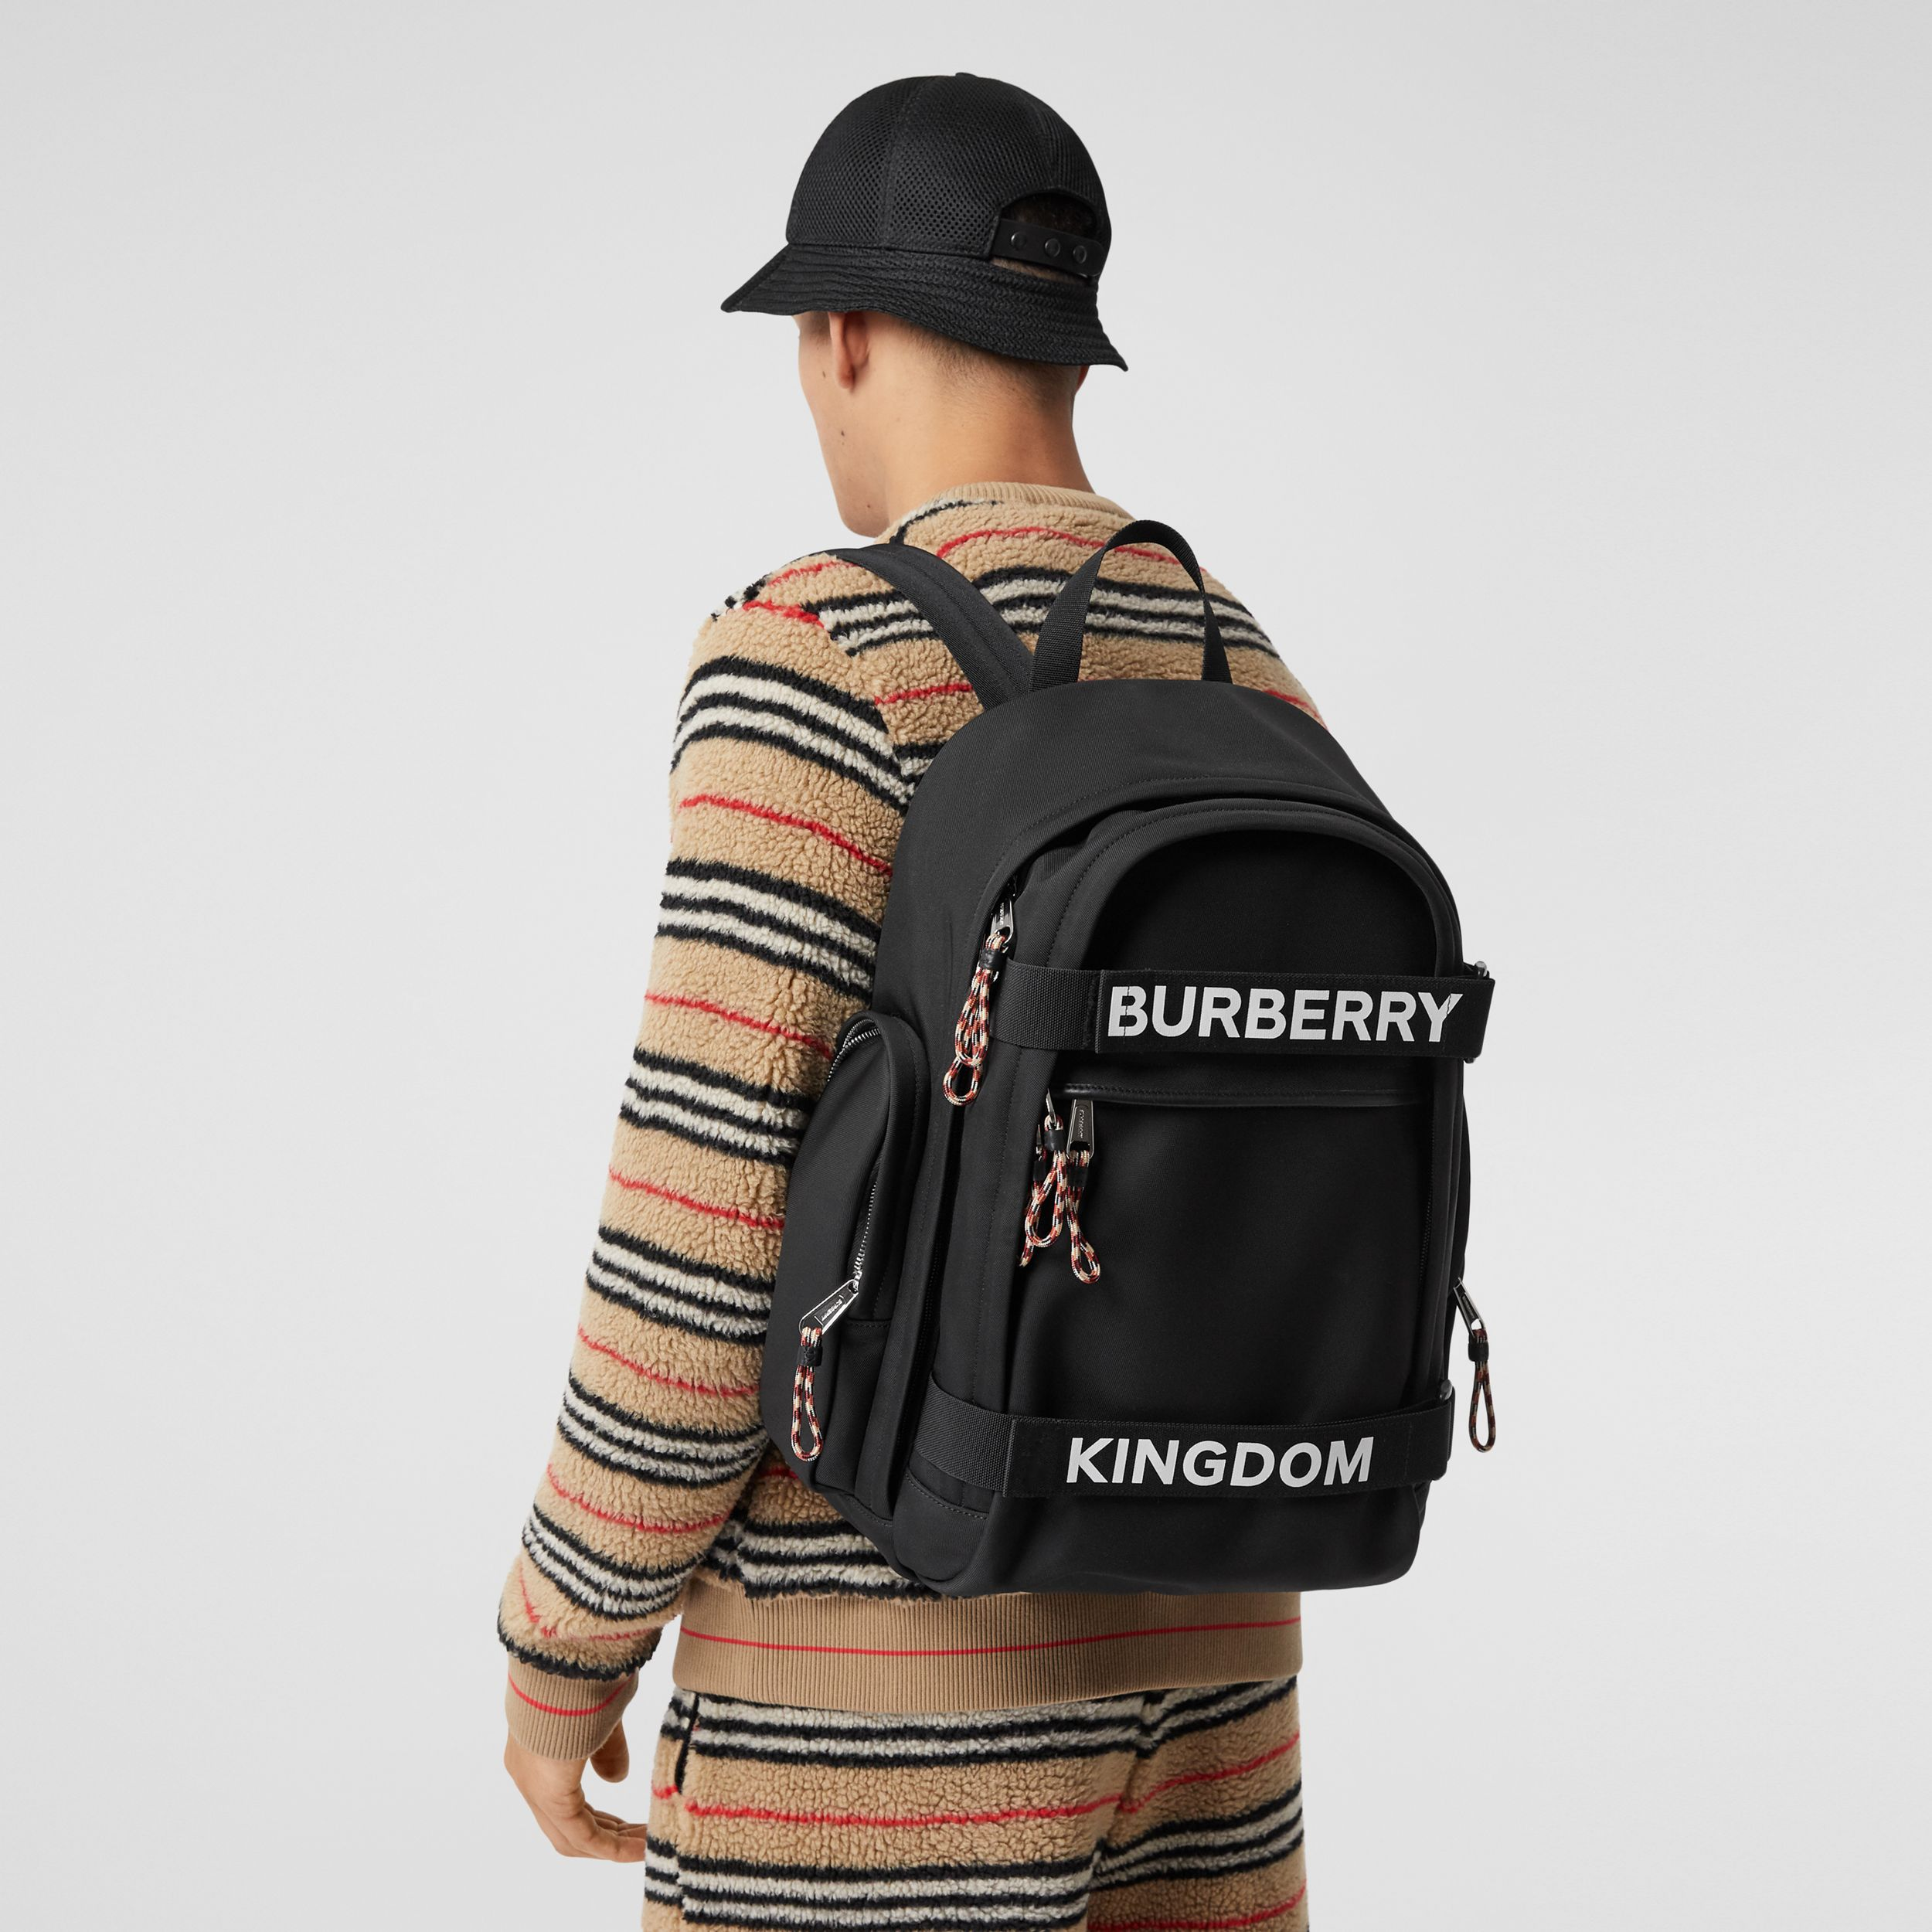 Large Logo and Kingdom Detail Nevis Backpack in Black/white | Burberry - 4